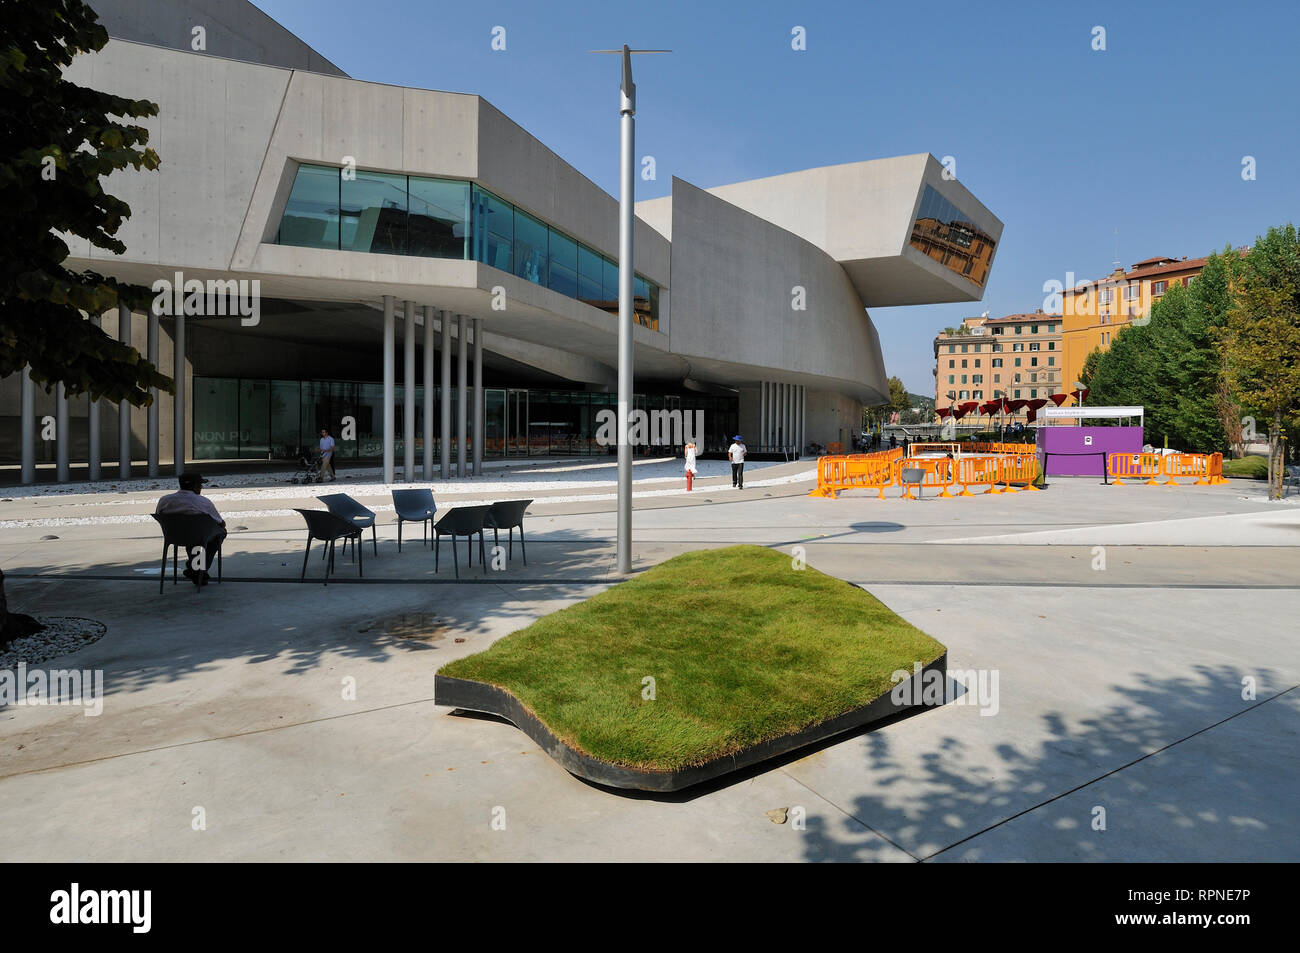 Rome. Italy. MAXXI National Museum of 21st Century Arts (Museo nazionale delle arti del XXI secolo), designed by Zaha Hadid, opened 2010. - Stock Image